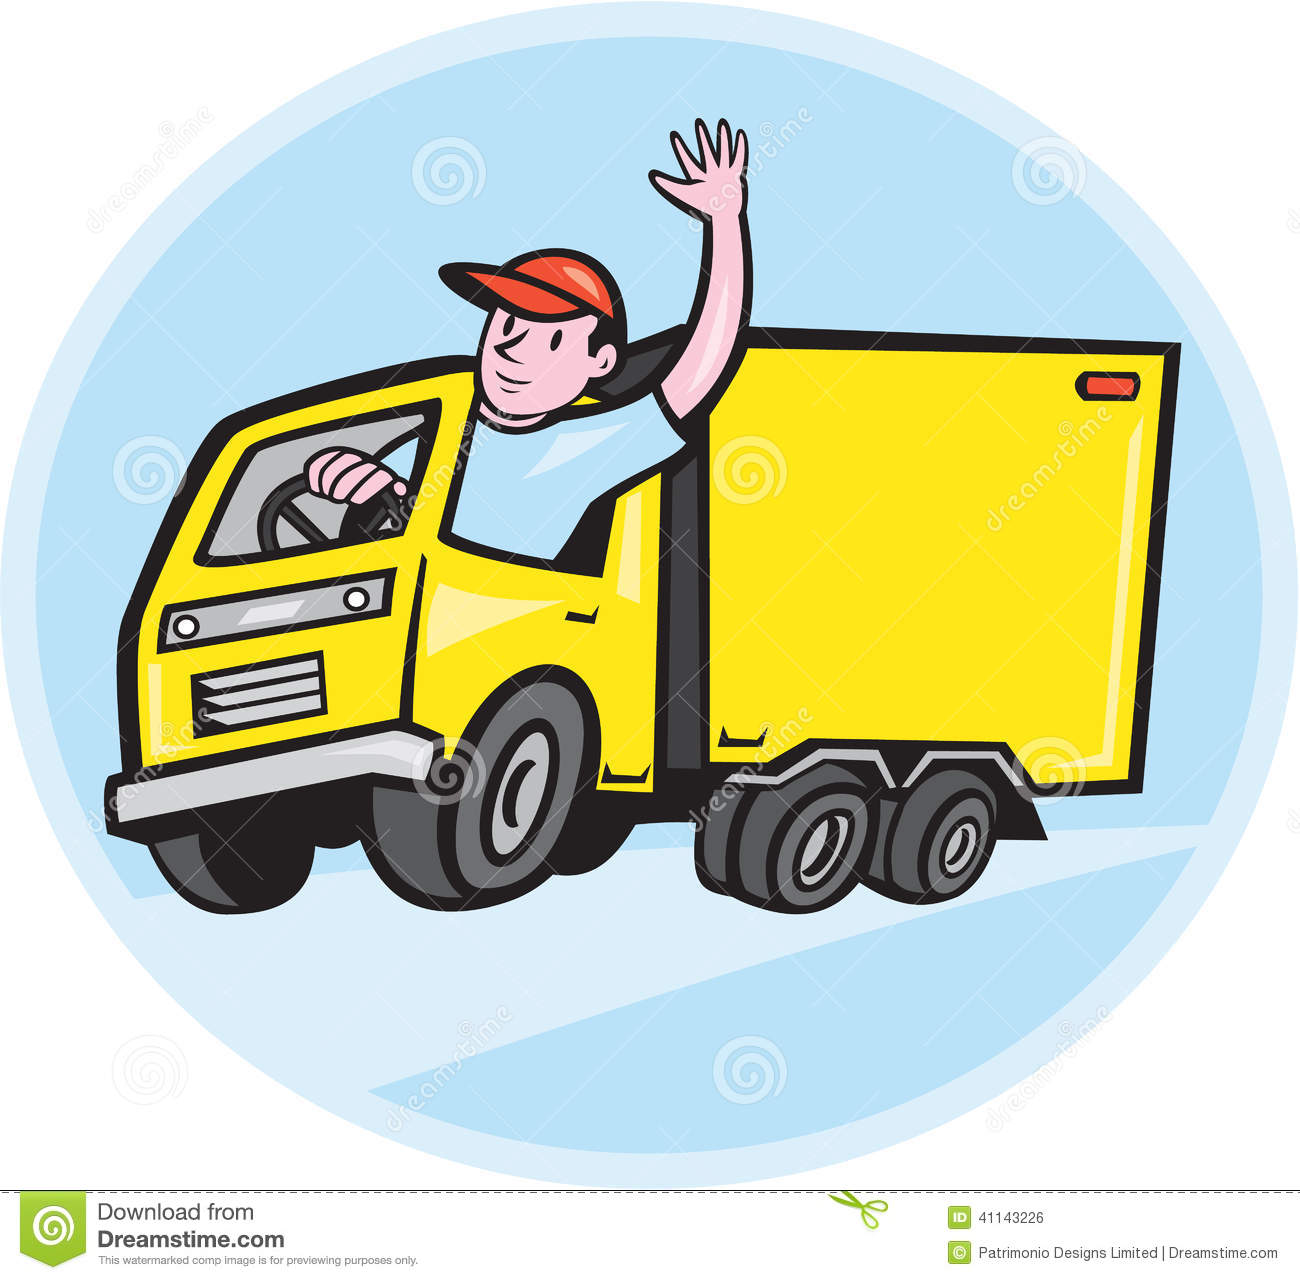 Delivery Truck Driver Waving Cartoon Stock Vector - Image: 41143226